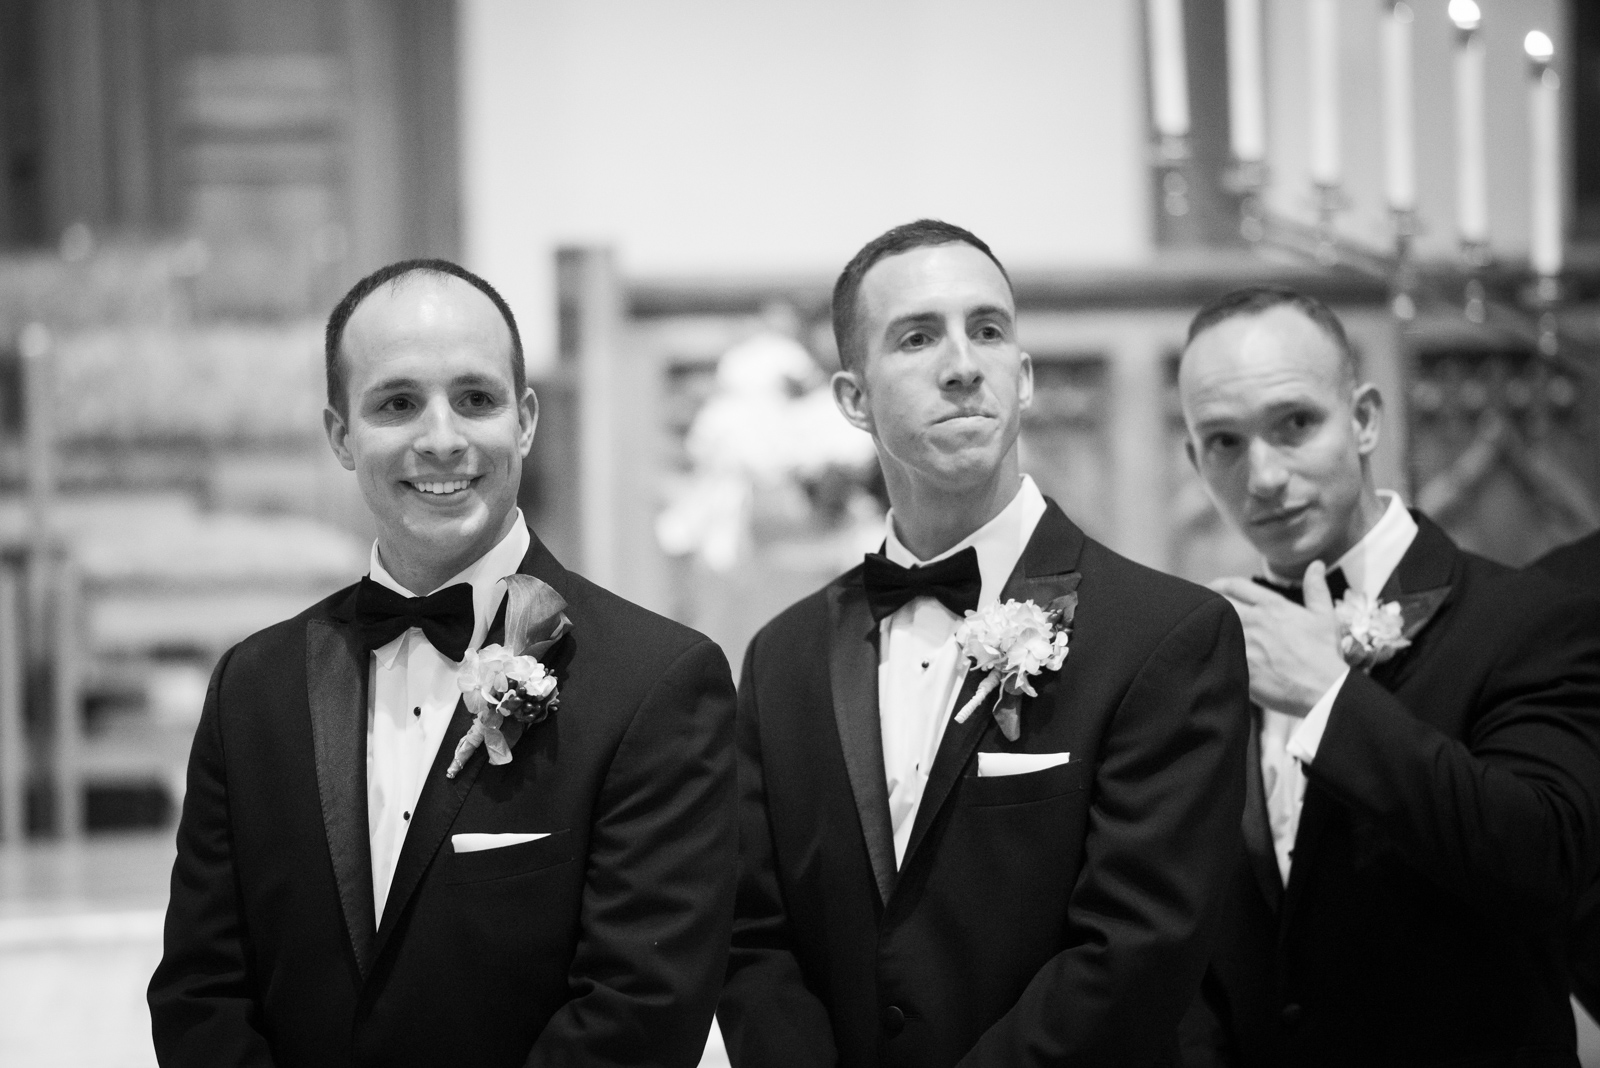 Scranton-clarks-summit-wedding-glen-oaks-contry-club-wedding-photographer-steven-serge-32.jpg